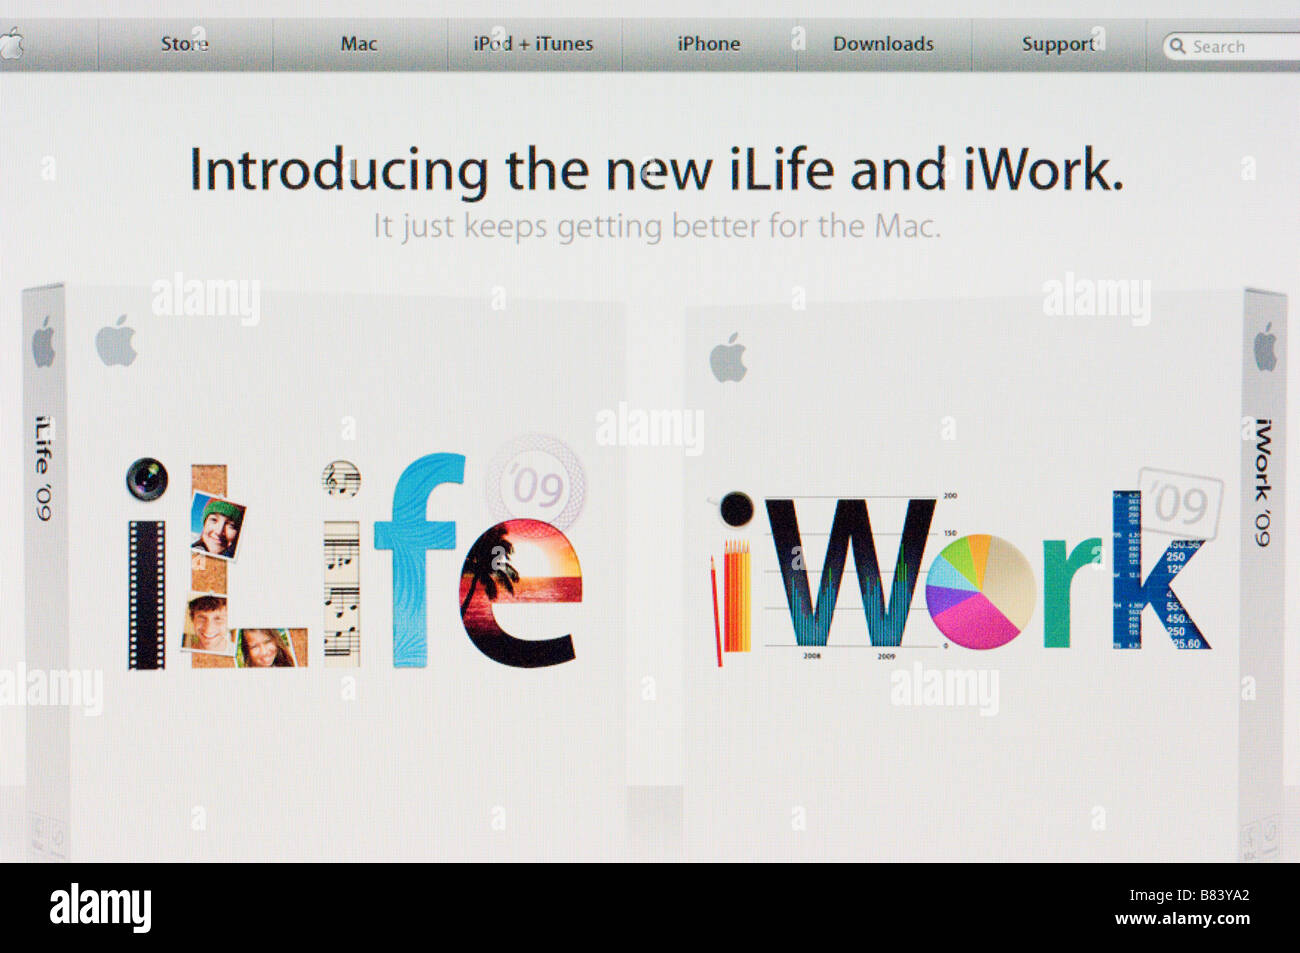 Apple computers advertising on the internet their ilife and